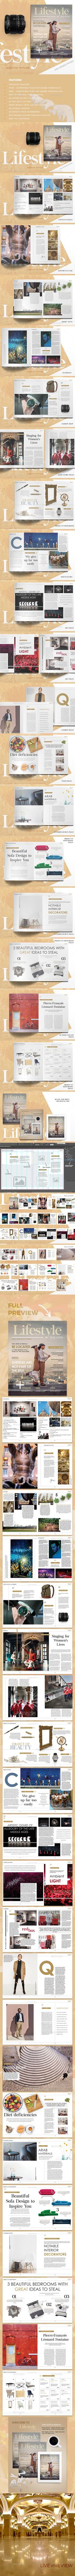 380 Best Top Magazine Templates images in 2018